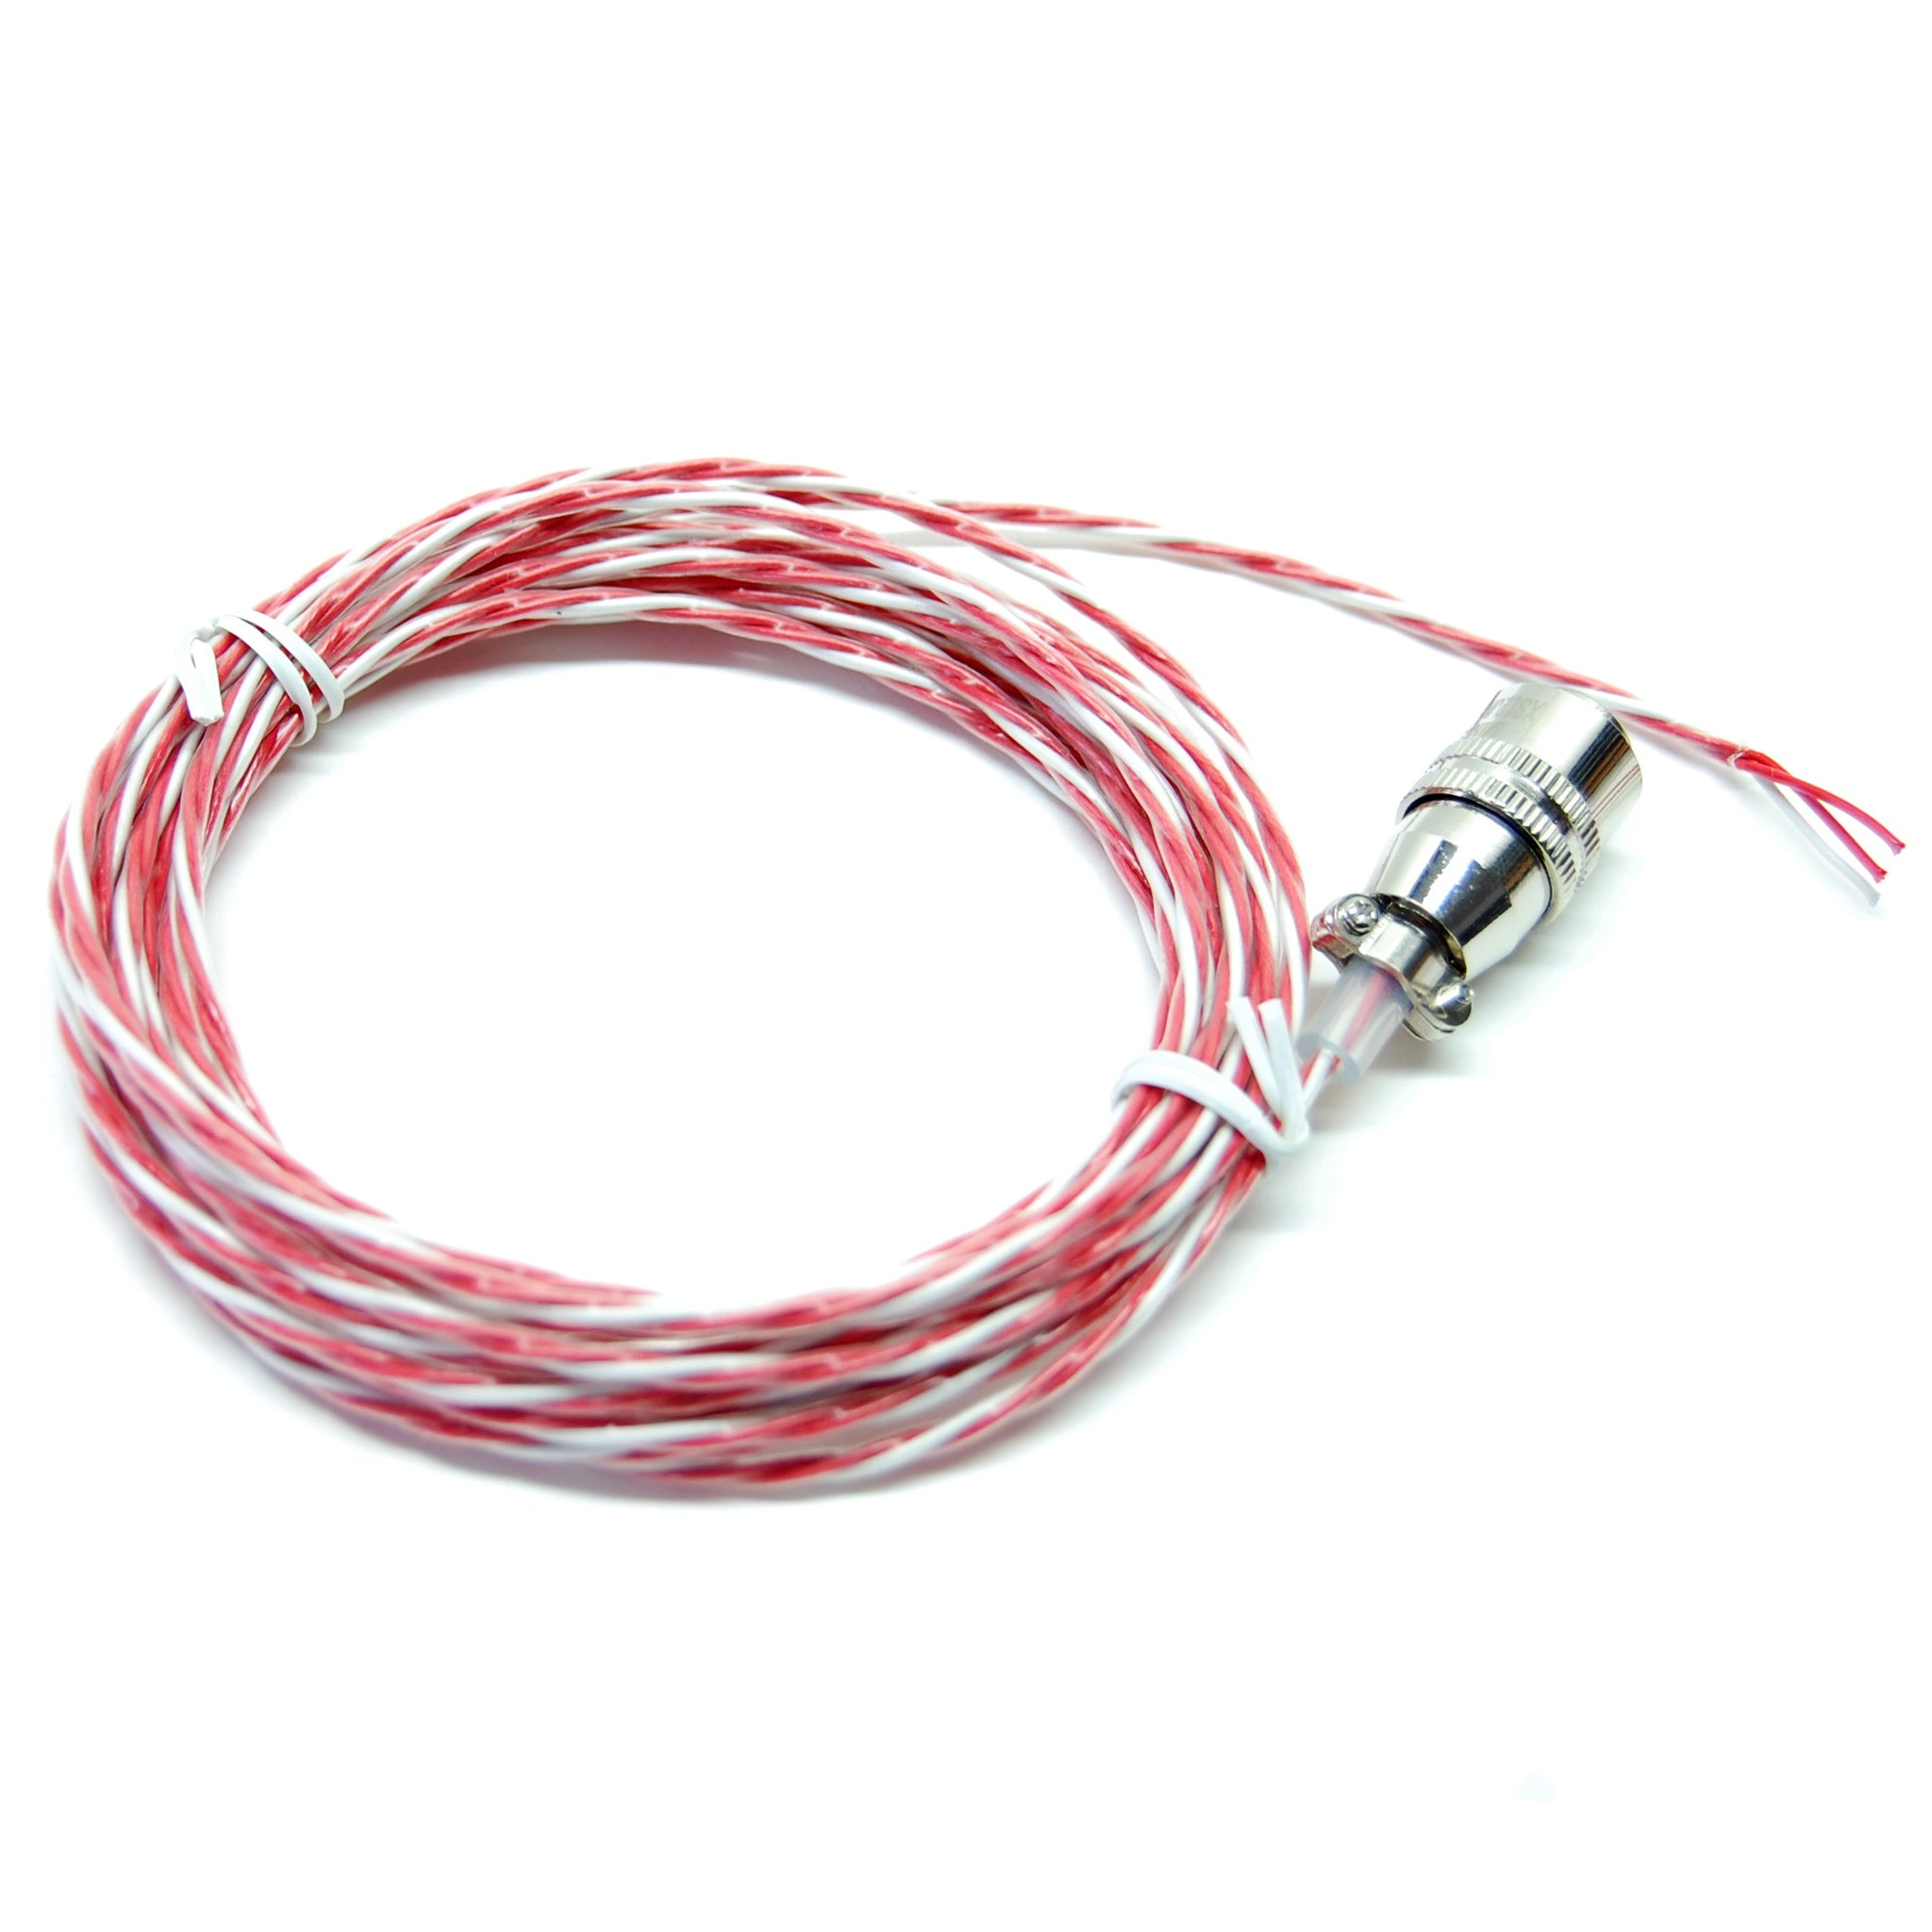 Temperature probe wire with locking connector, 3-conductor, teflon ...